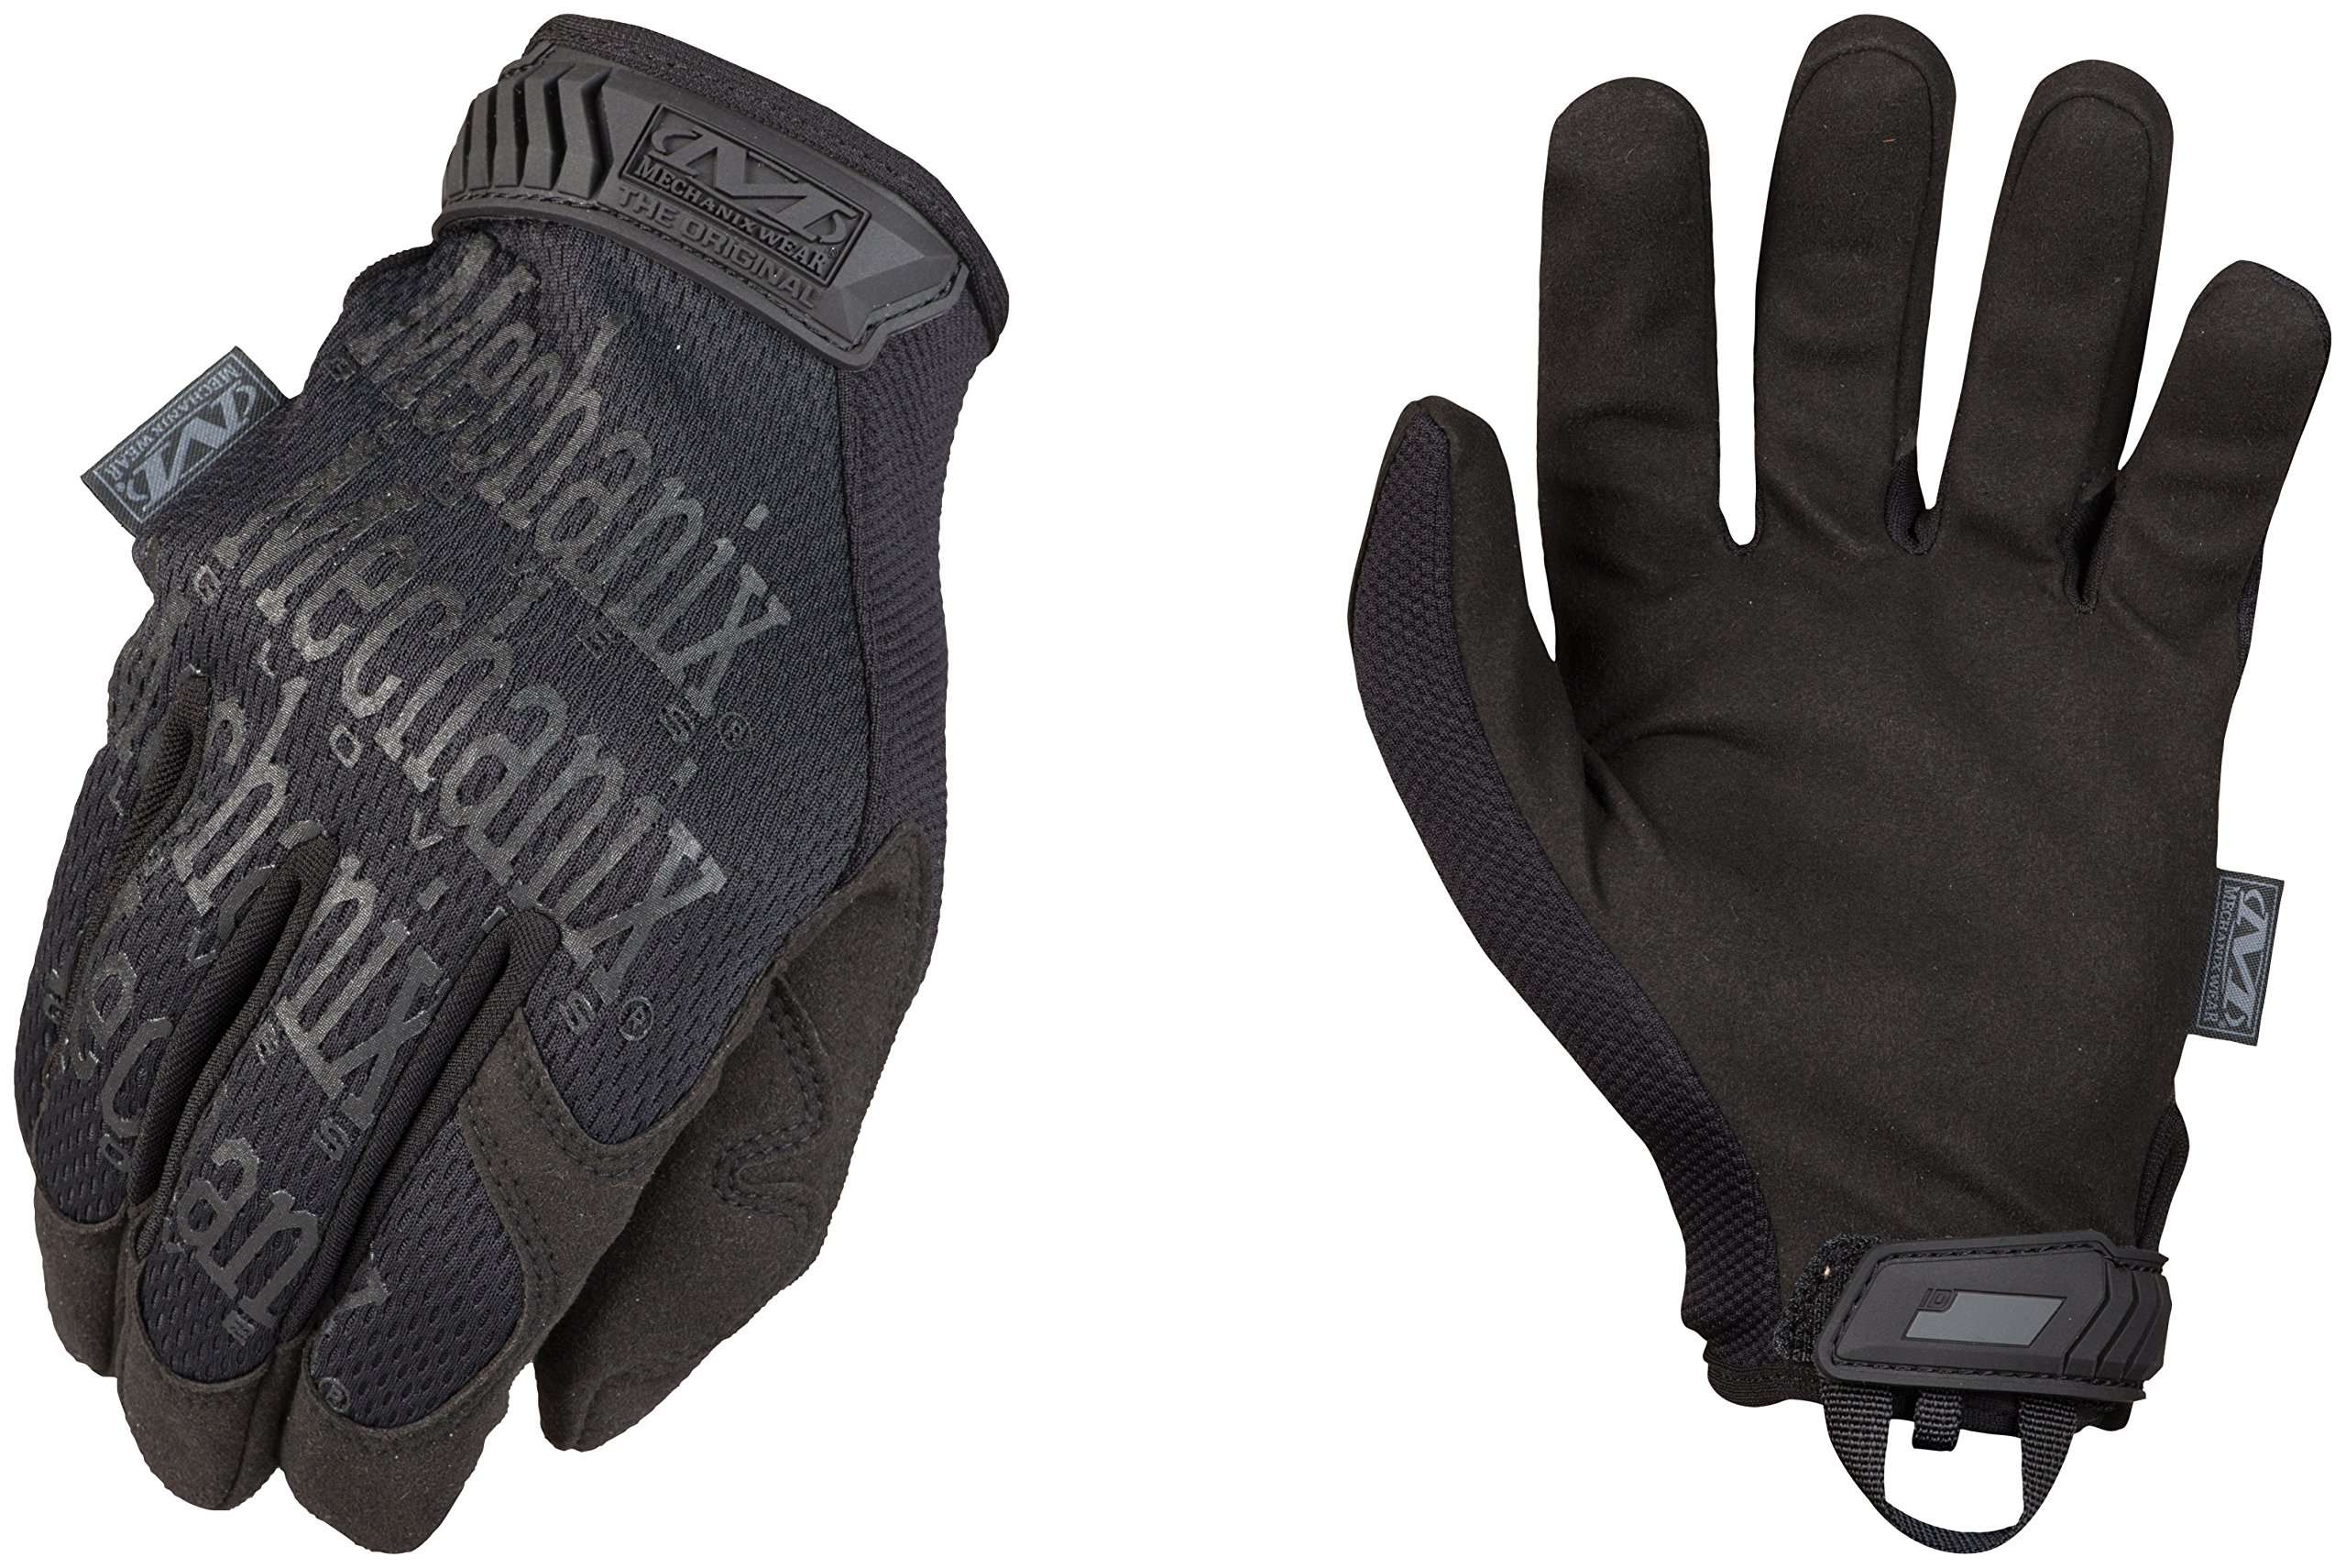 Mechanix Wear - Original Covert Tactical Gloves (Medium, Black) by Mechanix Wear